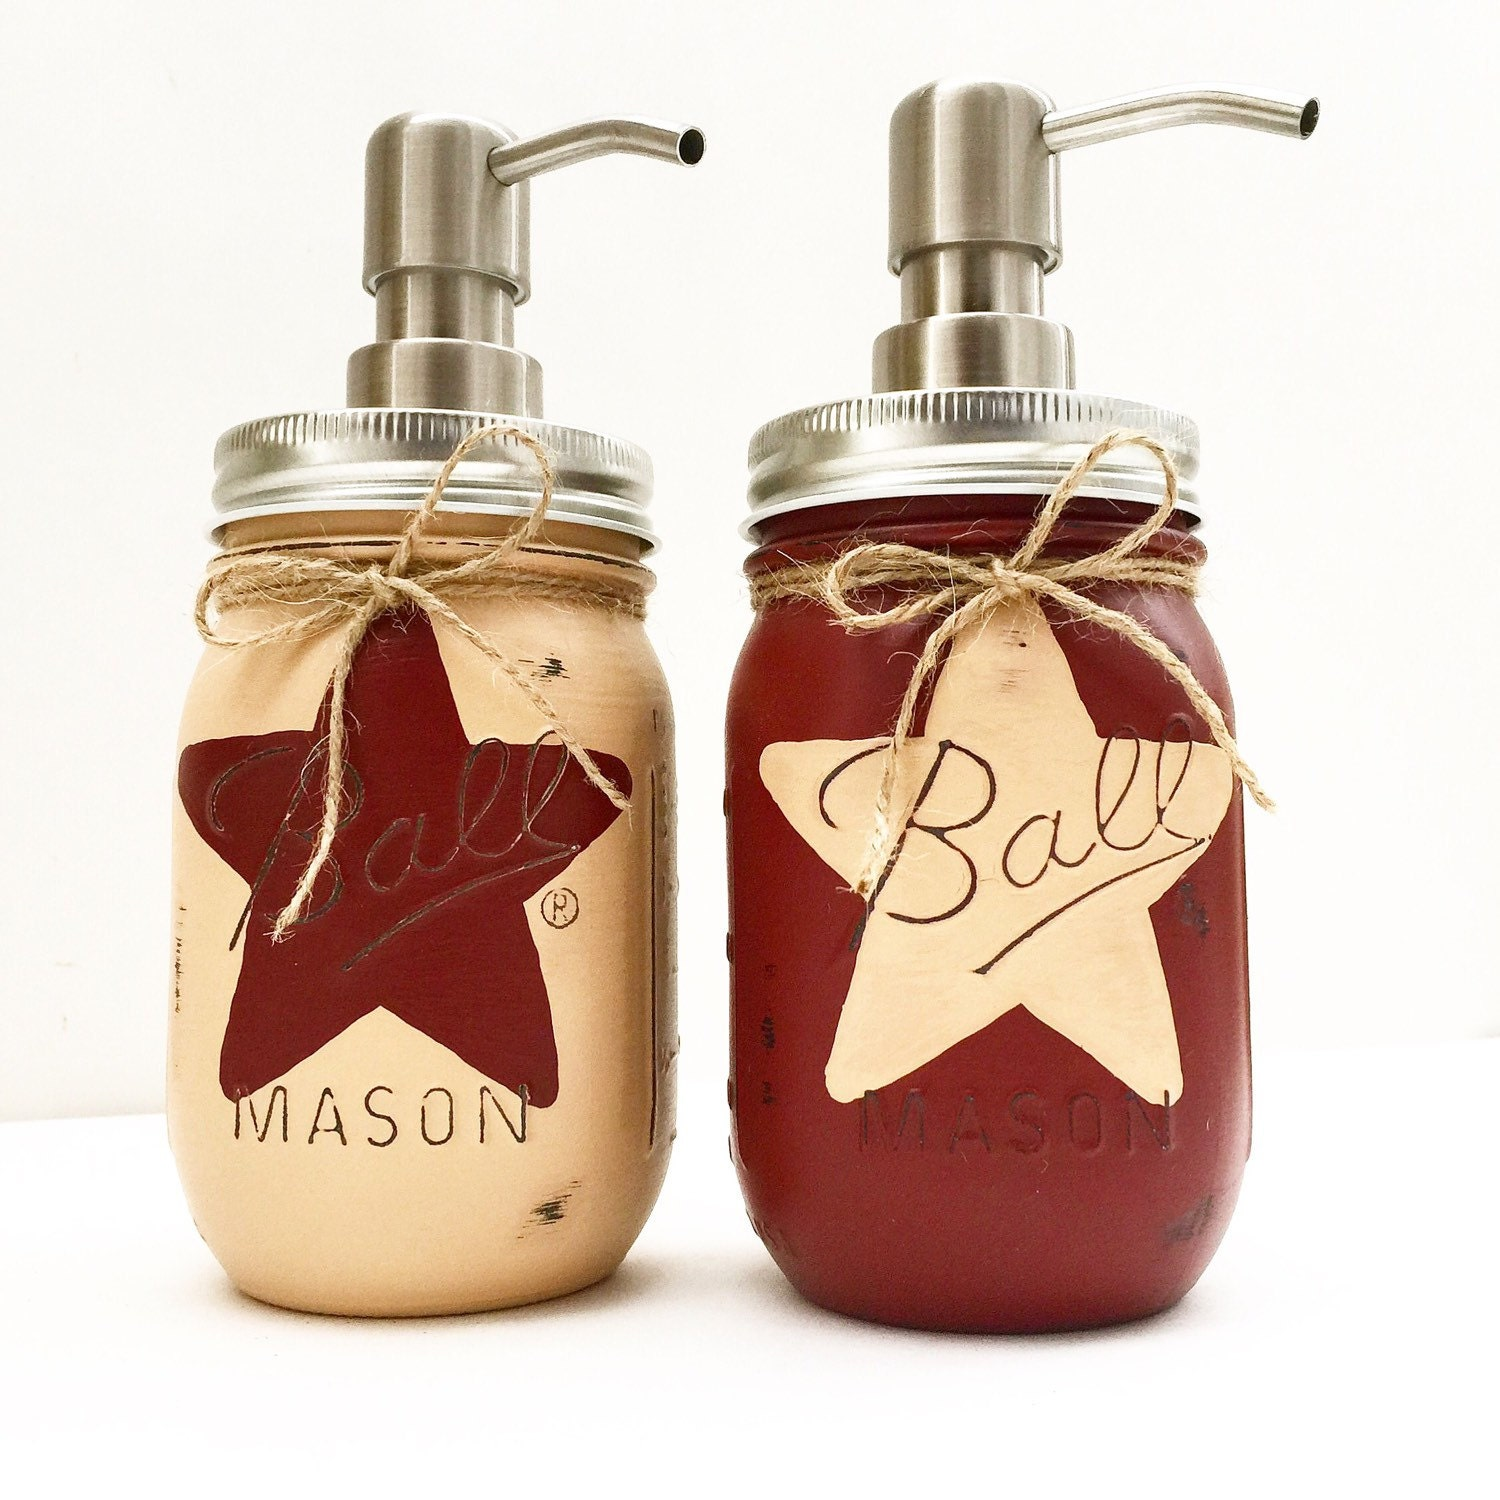 Bathroom Accessories Etsy set of 2 rustic star mason jar soap dispensers rustic star